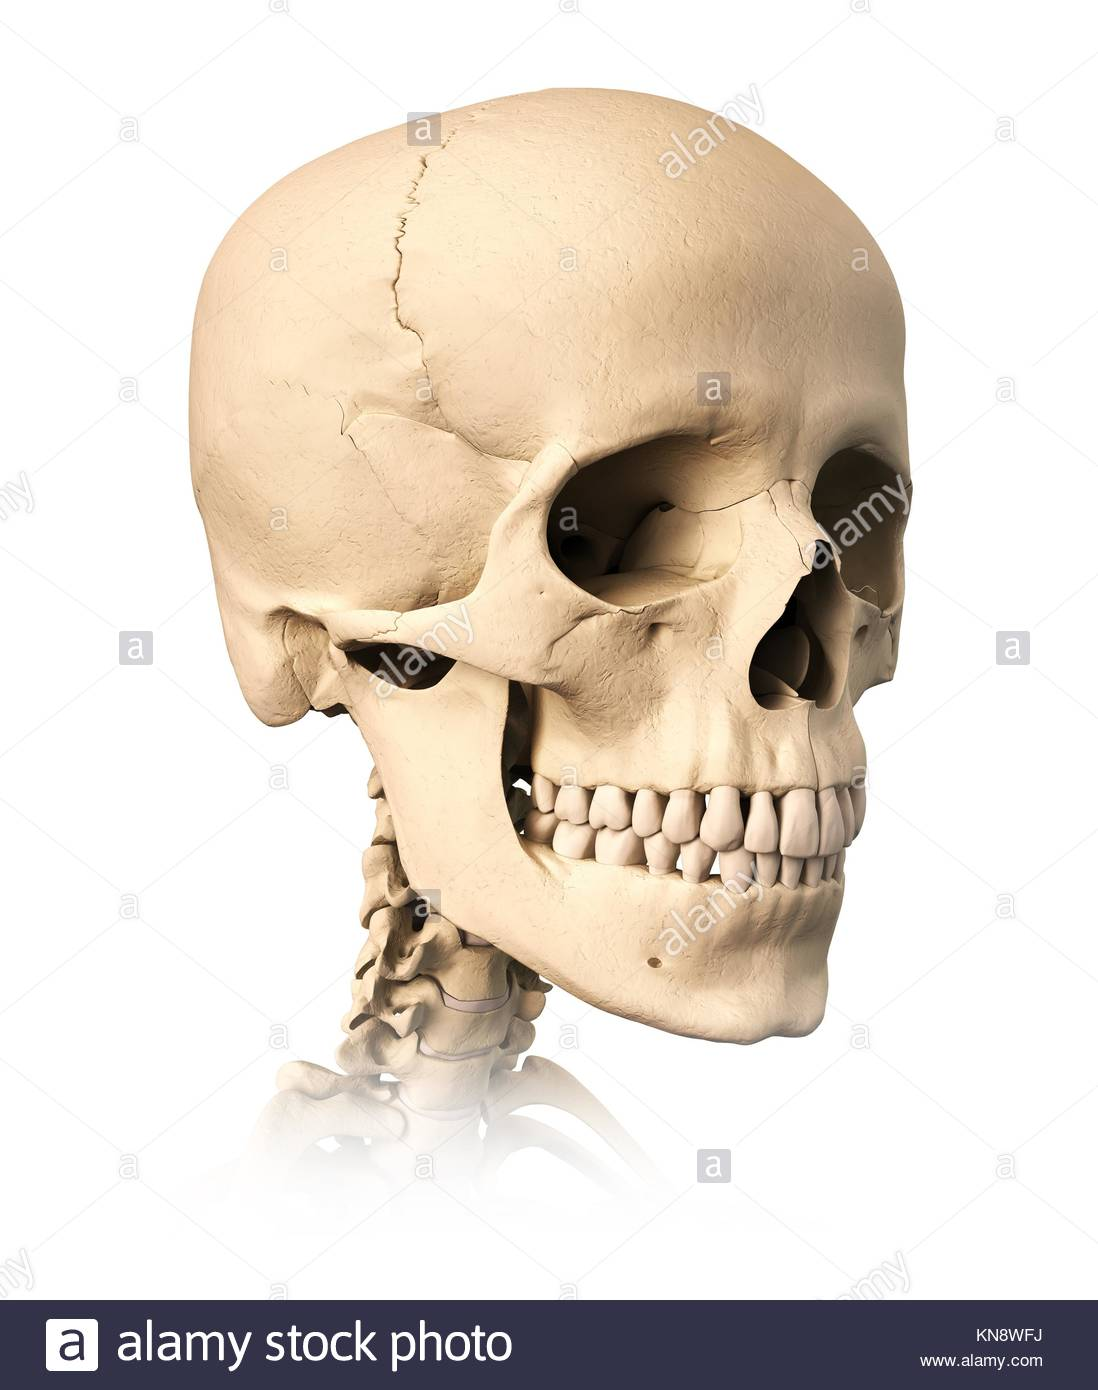 Very detailed and scientifically correct human skull, on white background. Anatomy image. - Stock Image